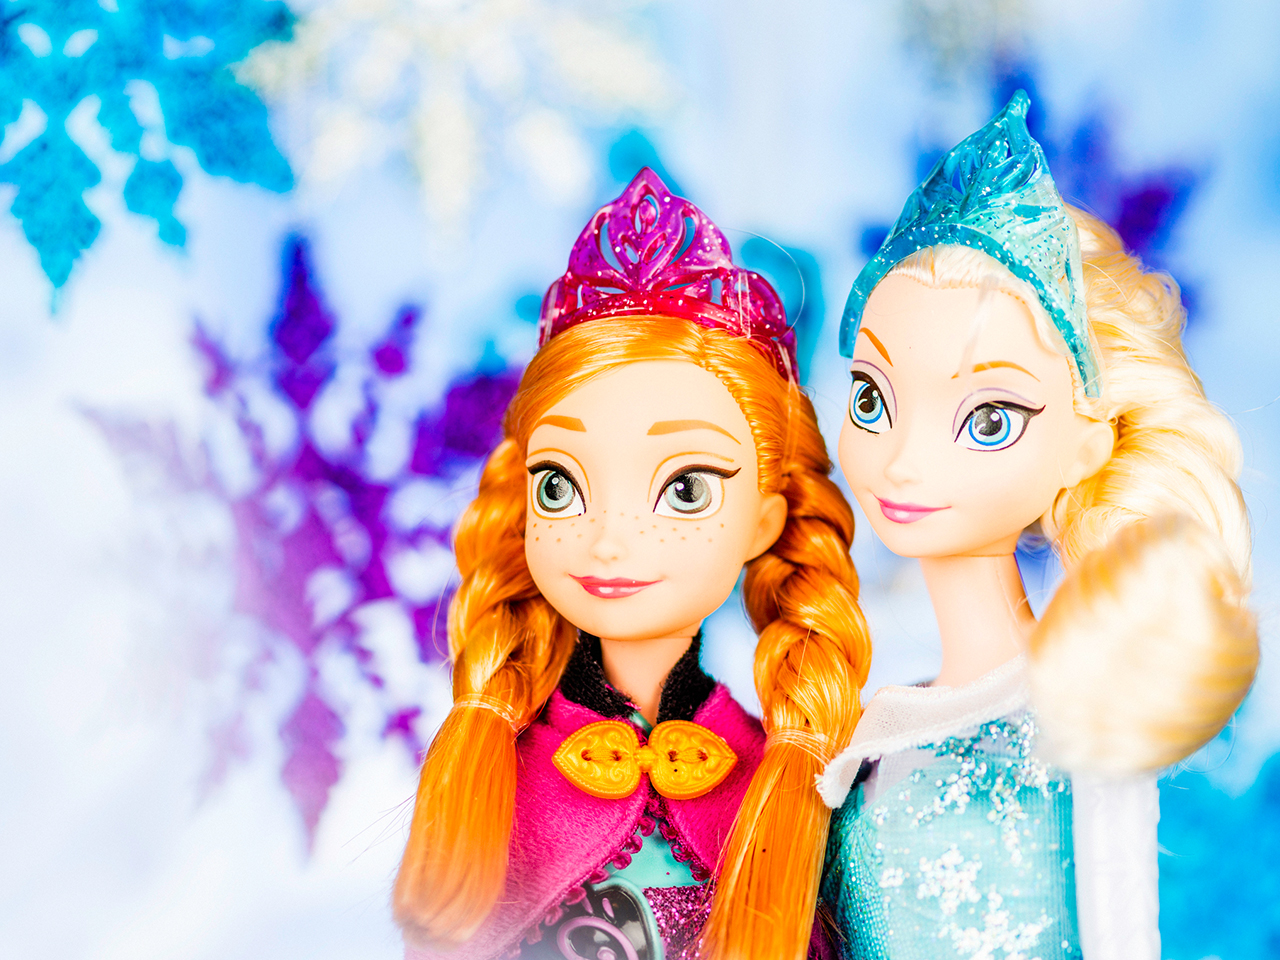 Dolls of characters from Disney's Frozen